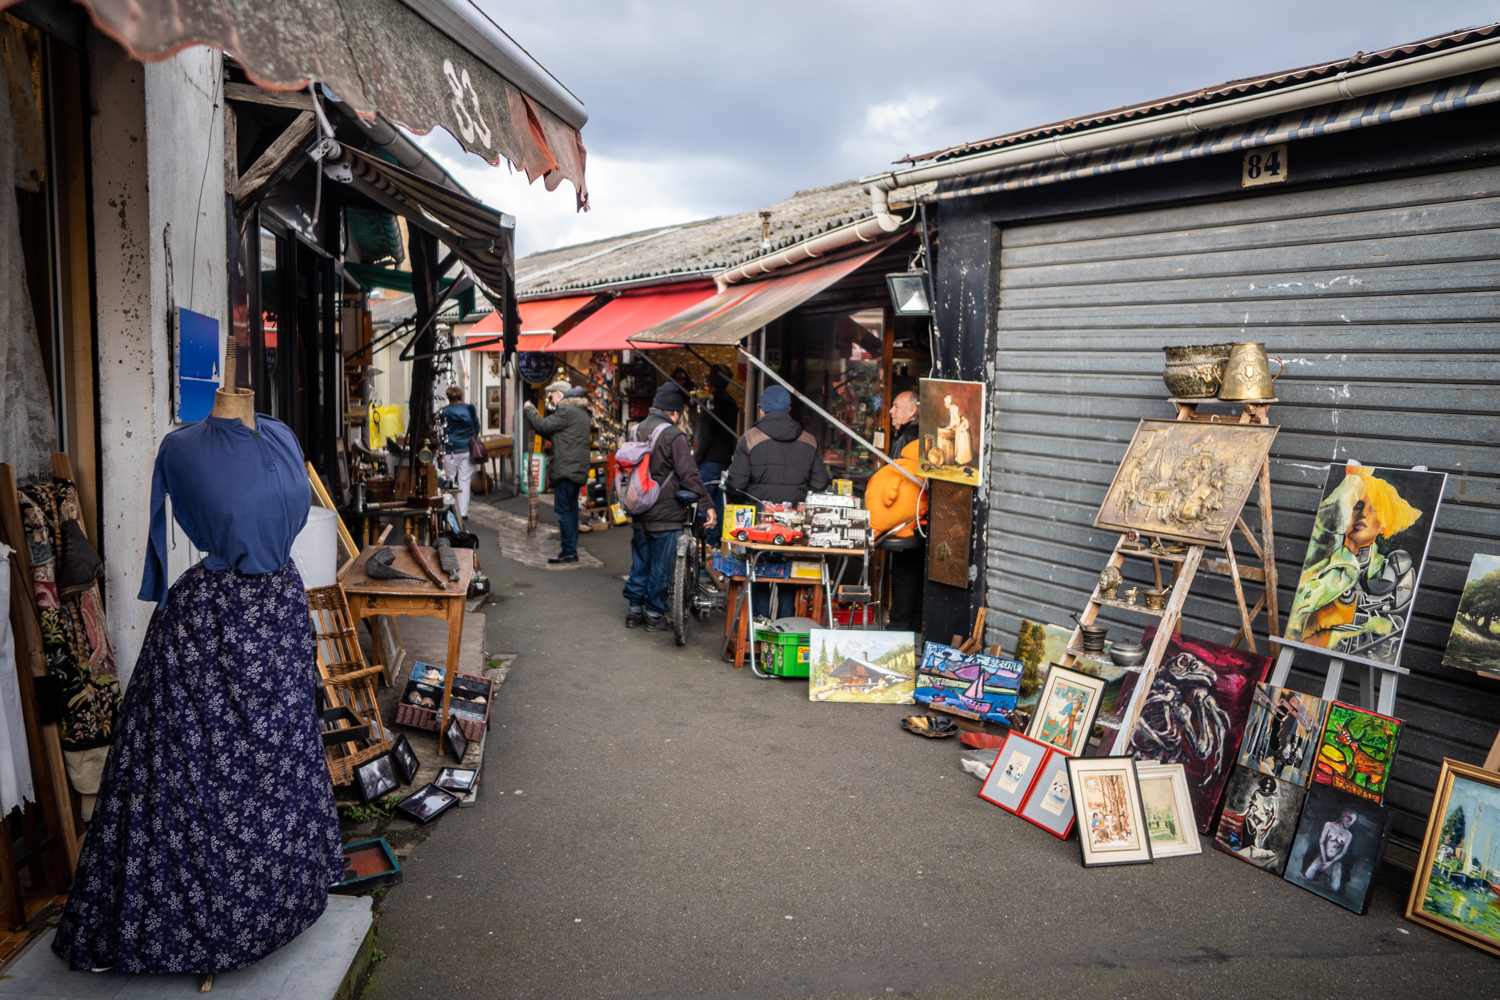 puces de saint-ouen, paris face cachée 2019, paris face cachée, chiner à paris, puces paris, antiquaire paris, marché antiquités paris